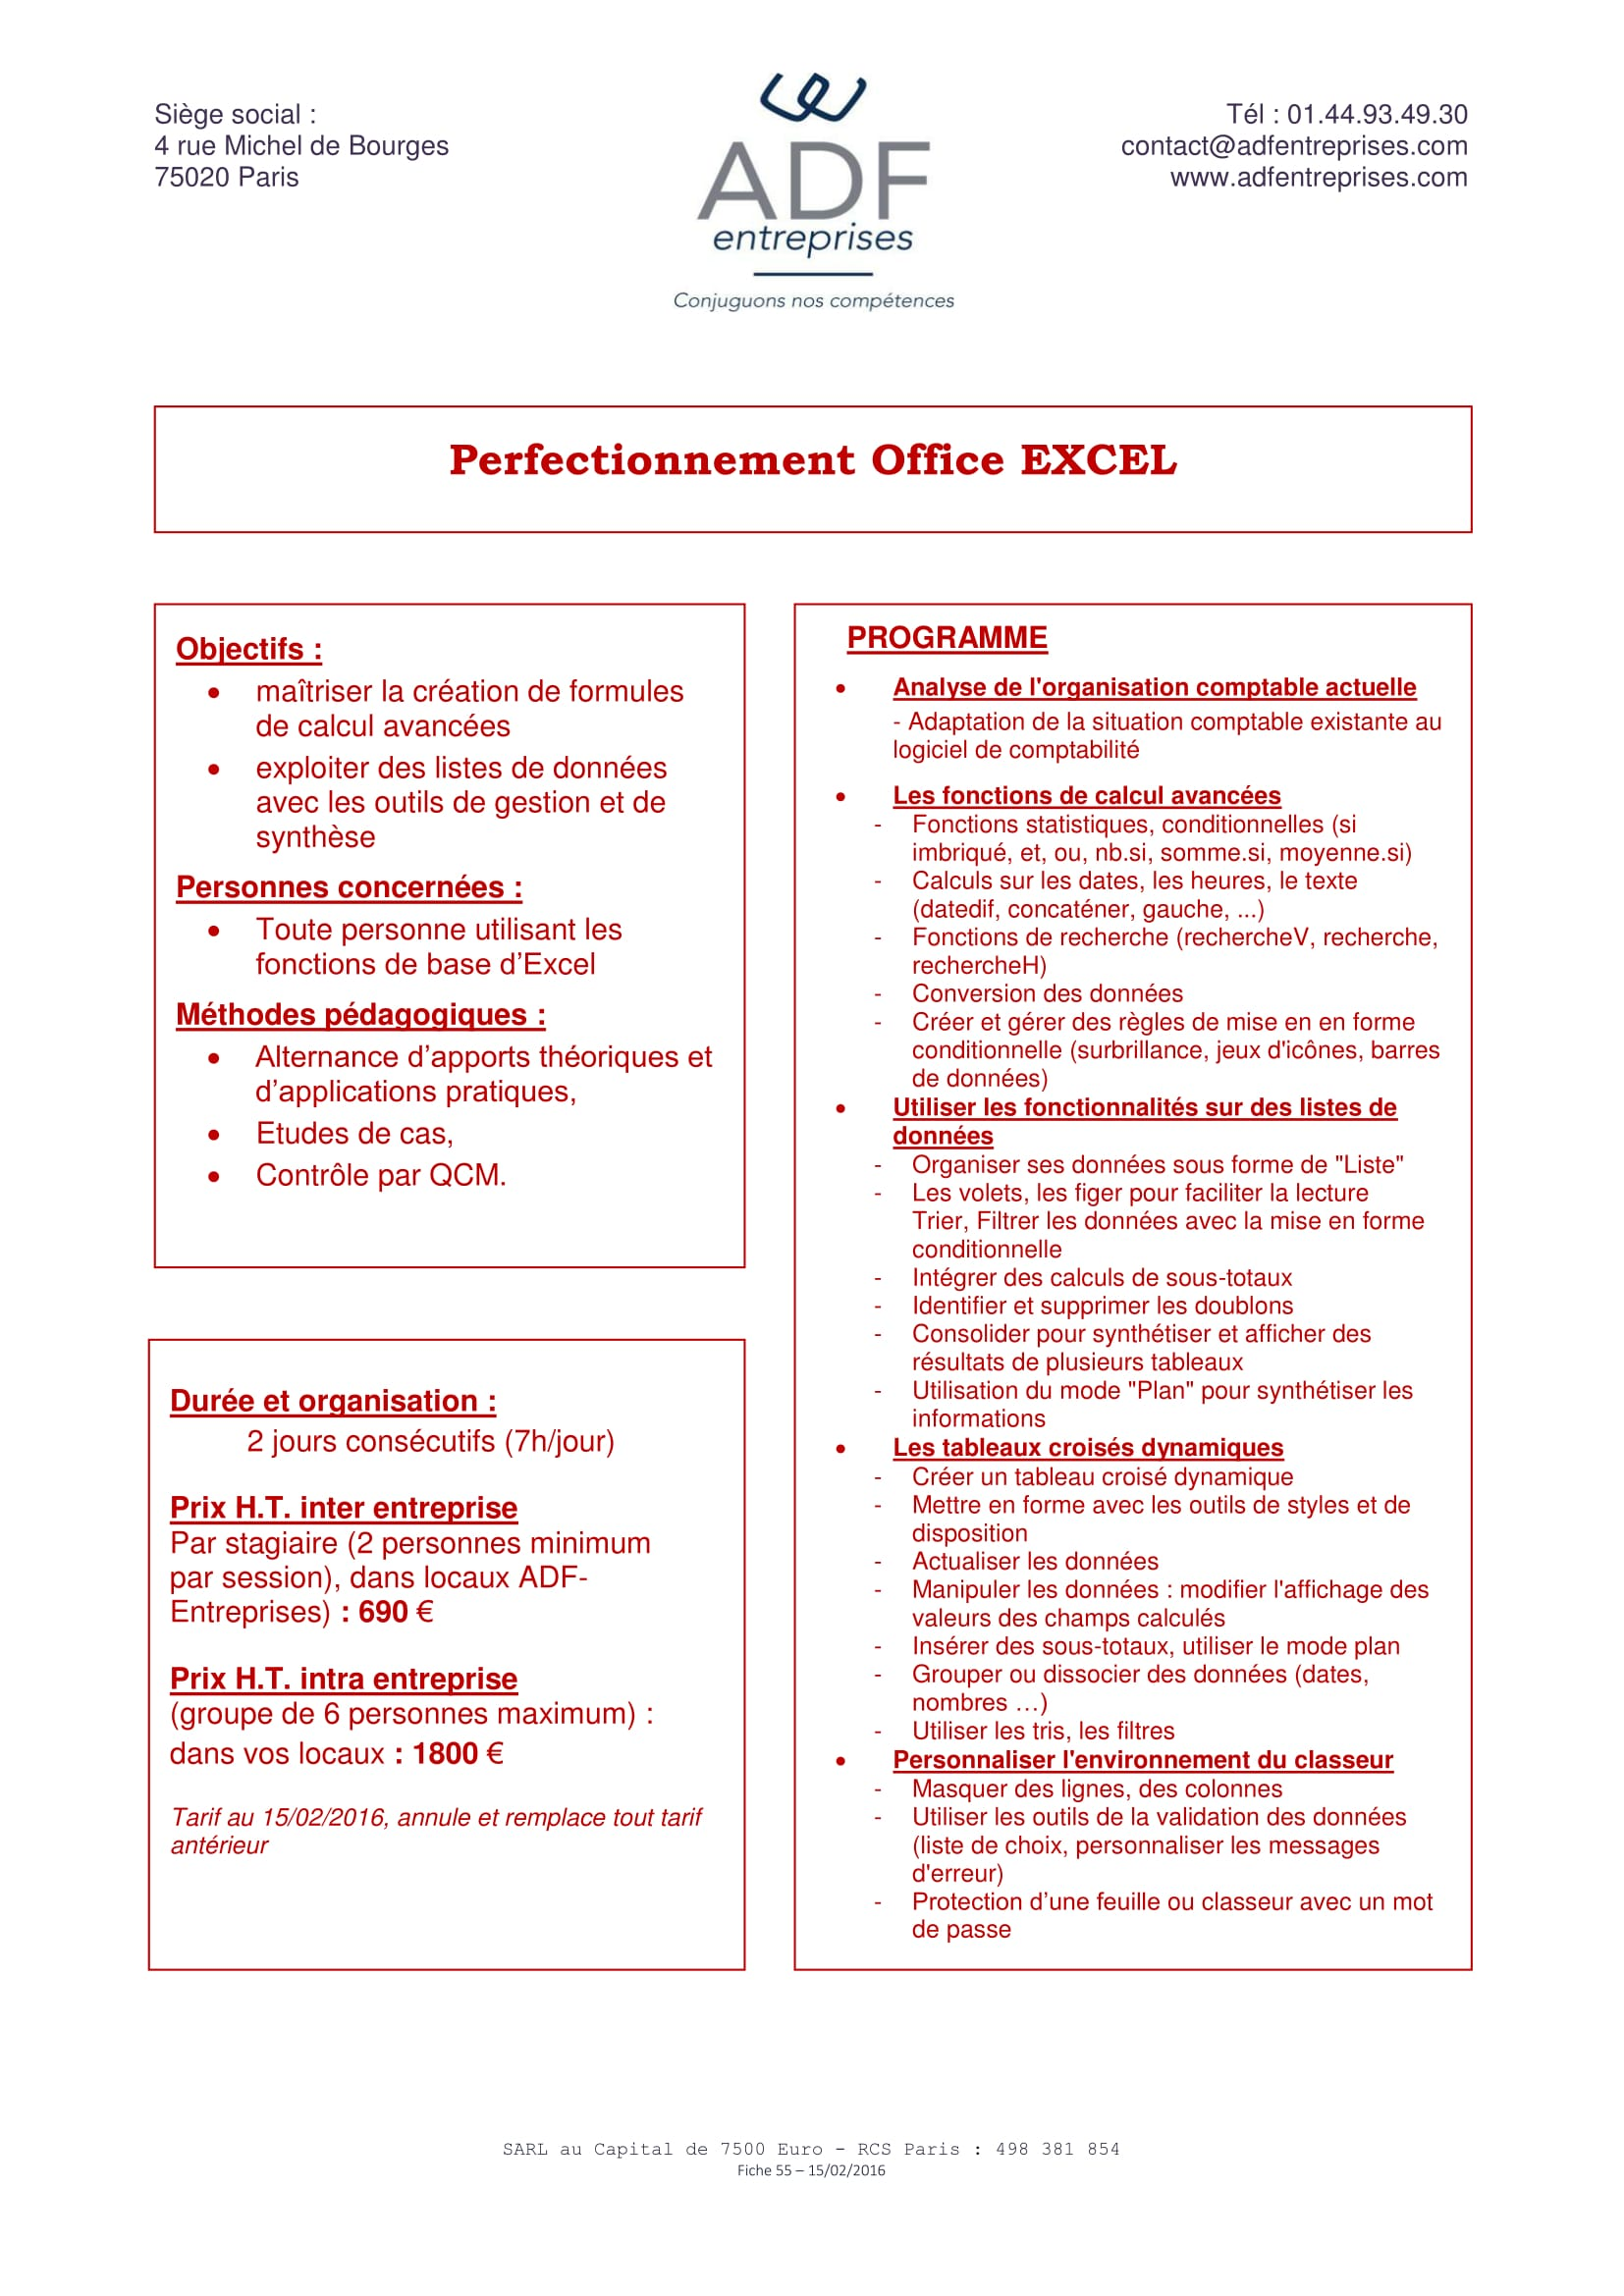 Perfectionnement Office Excel